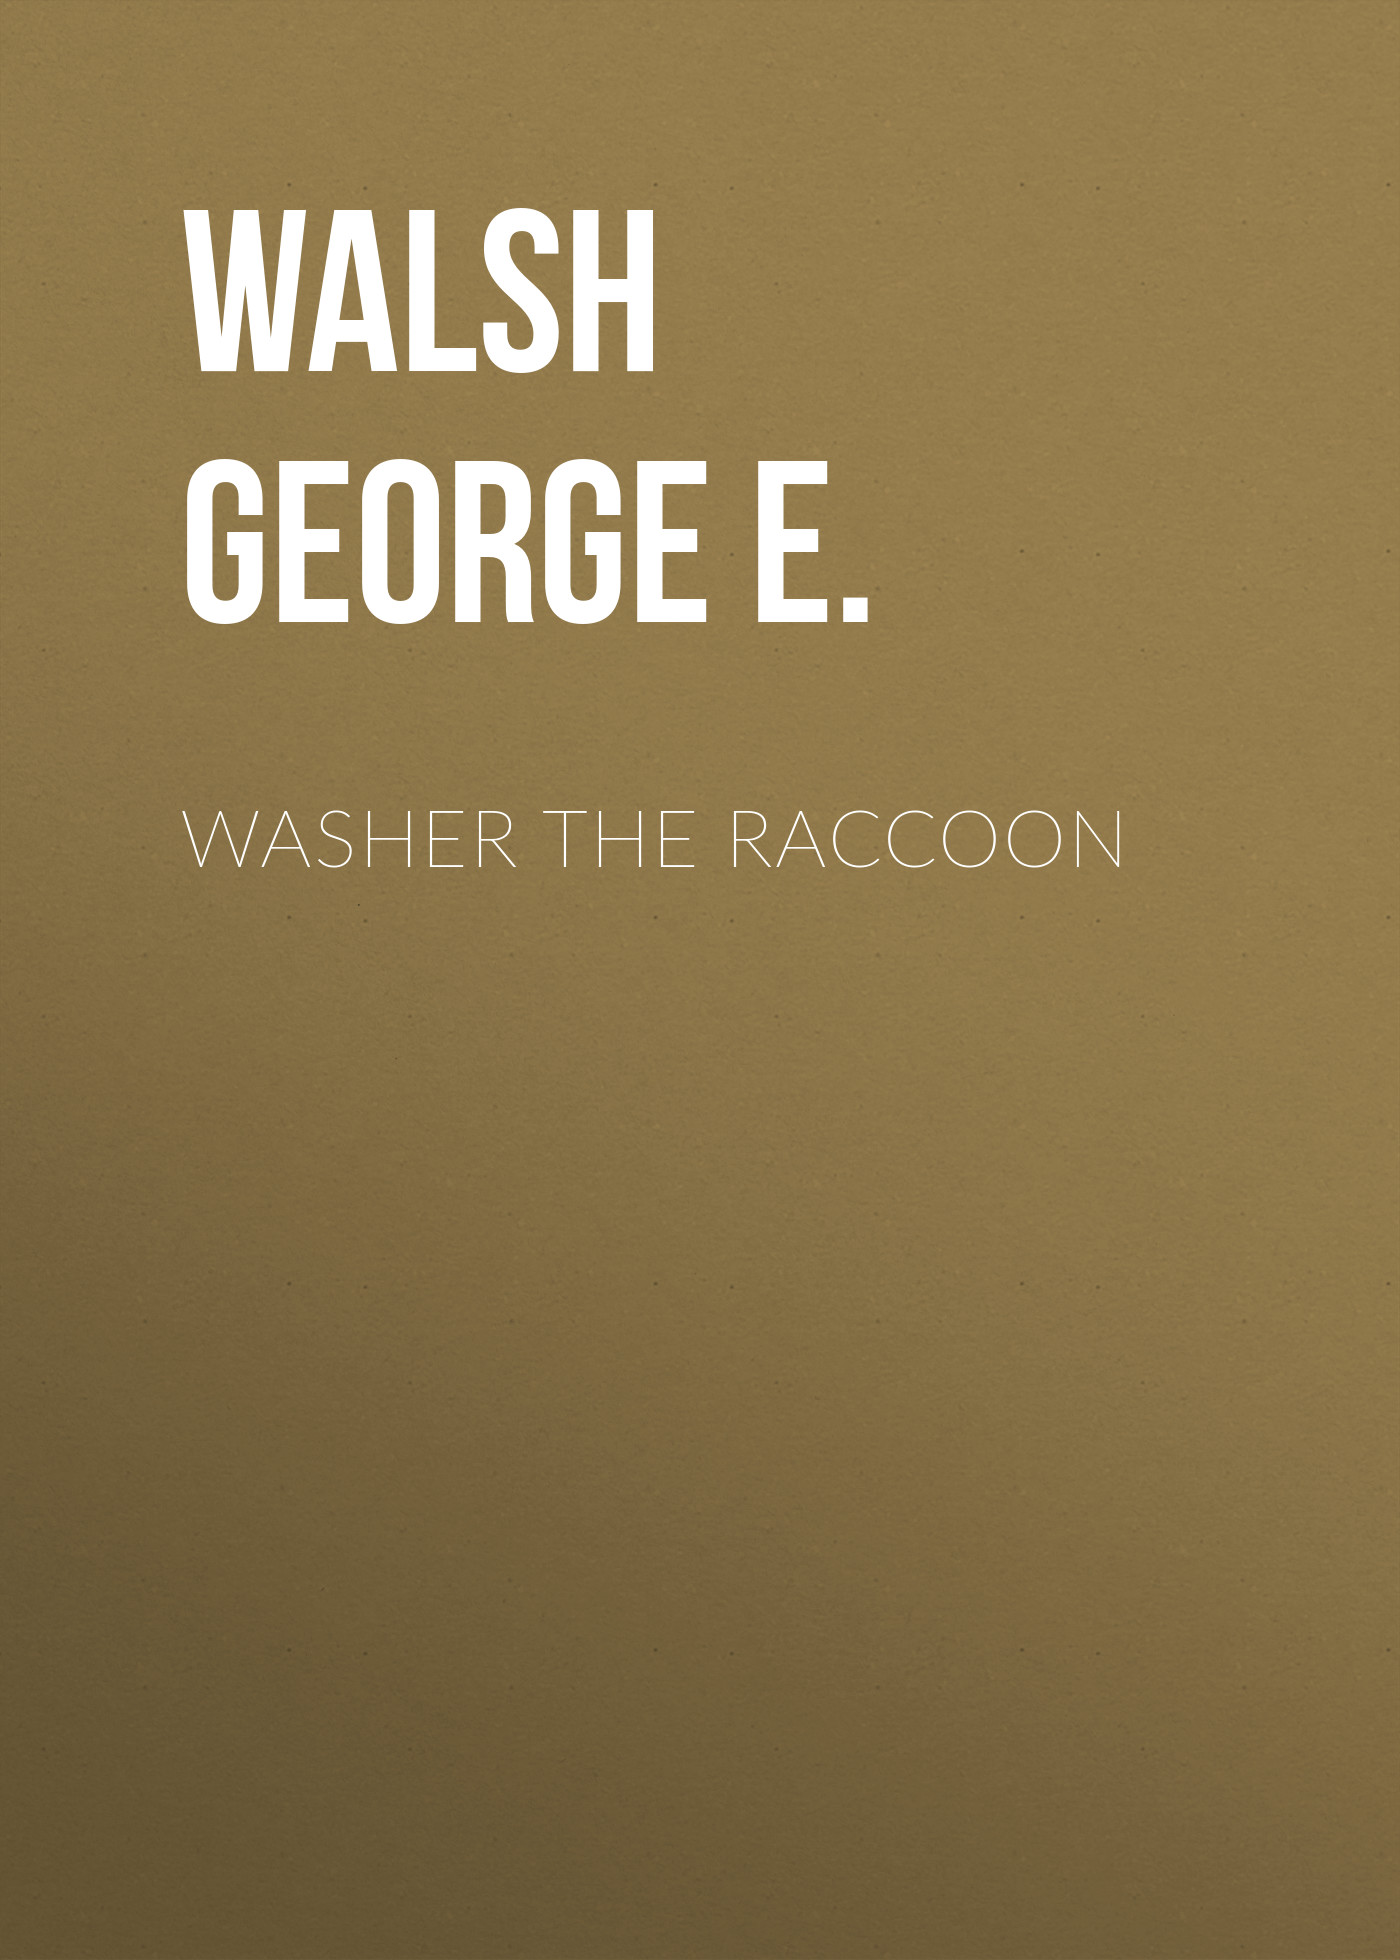 Walsh George E. Washer the Raccoon